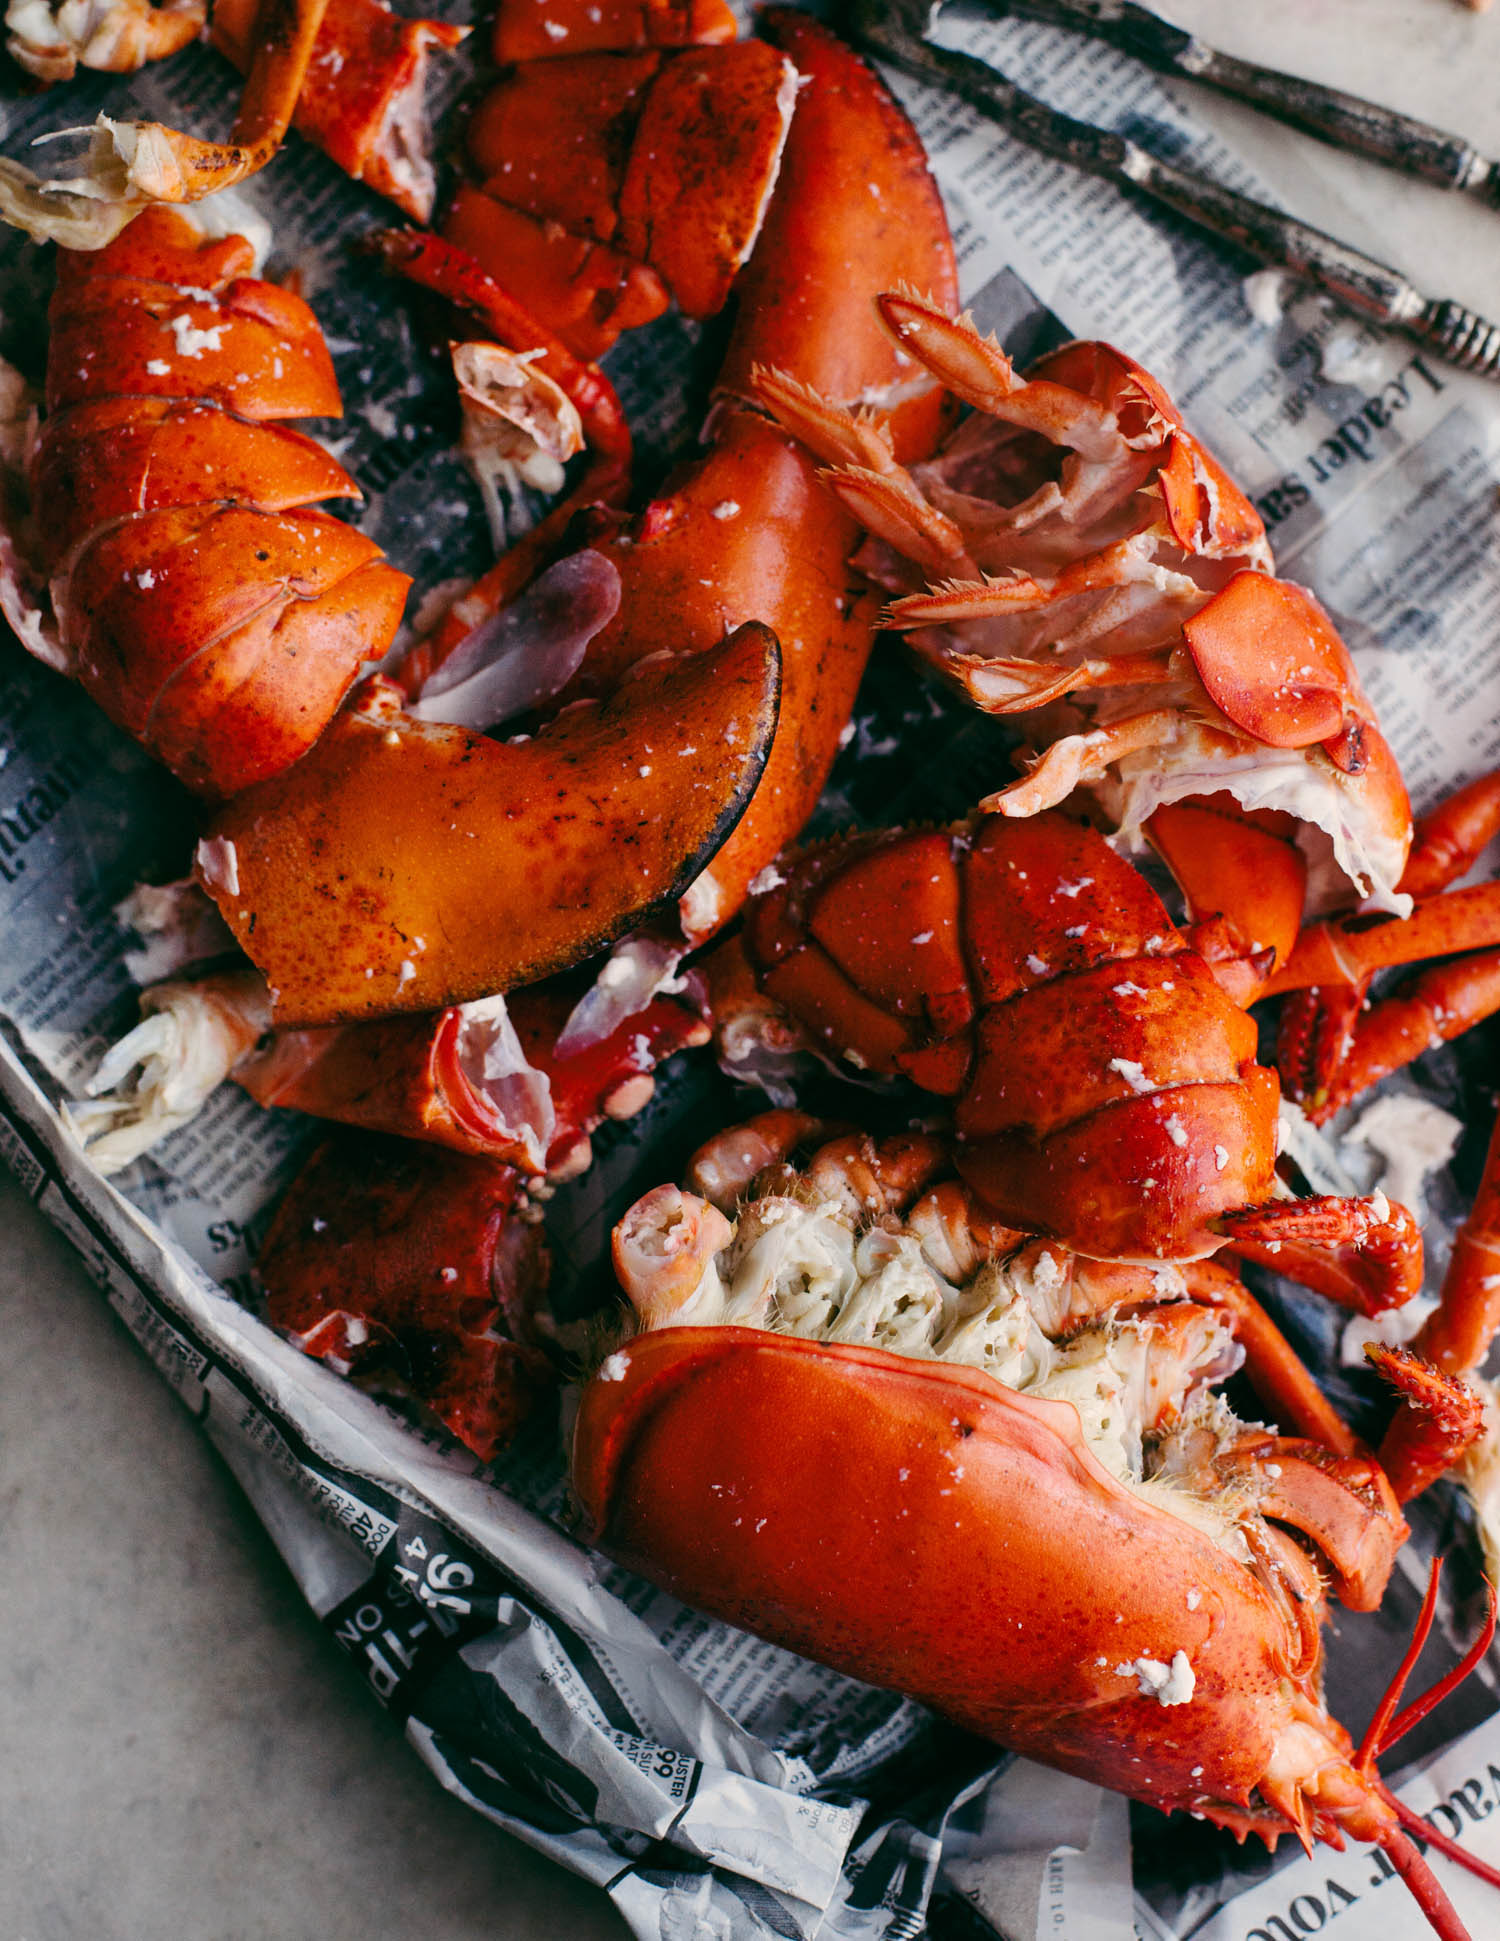 Lobster photographed by Adam DeTour